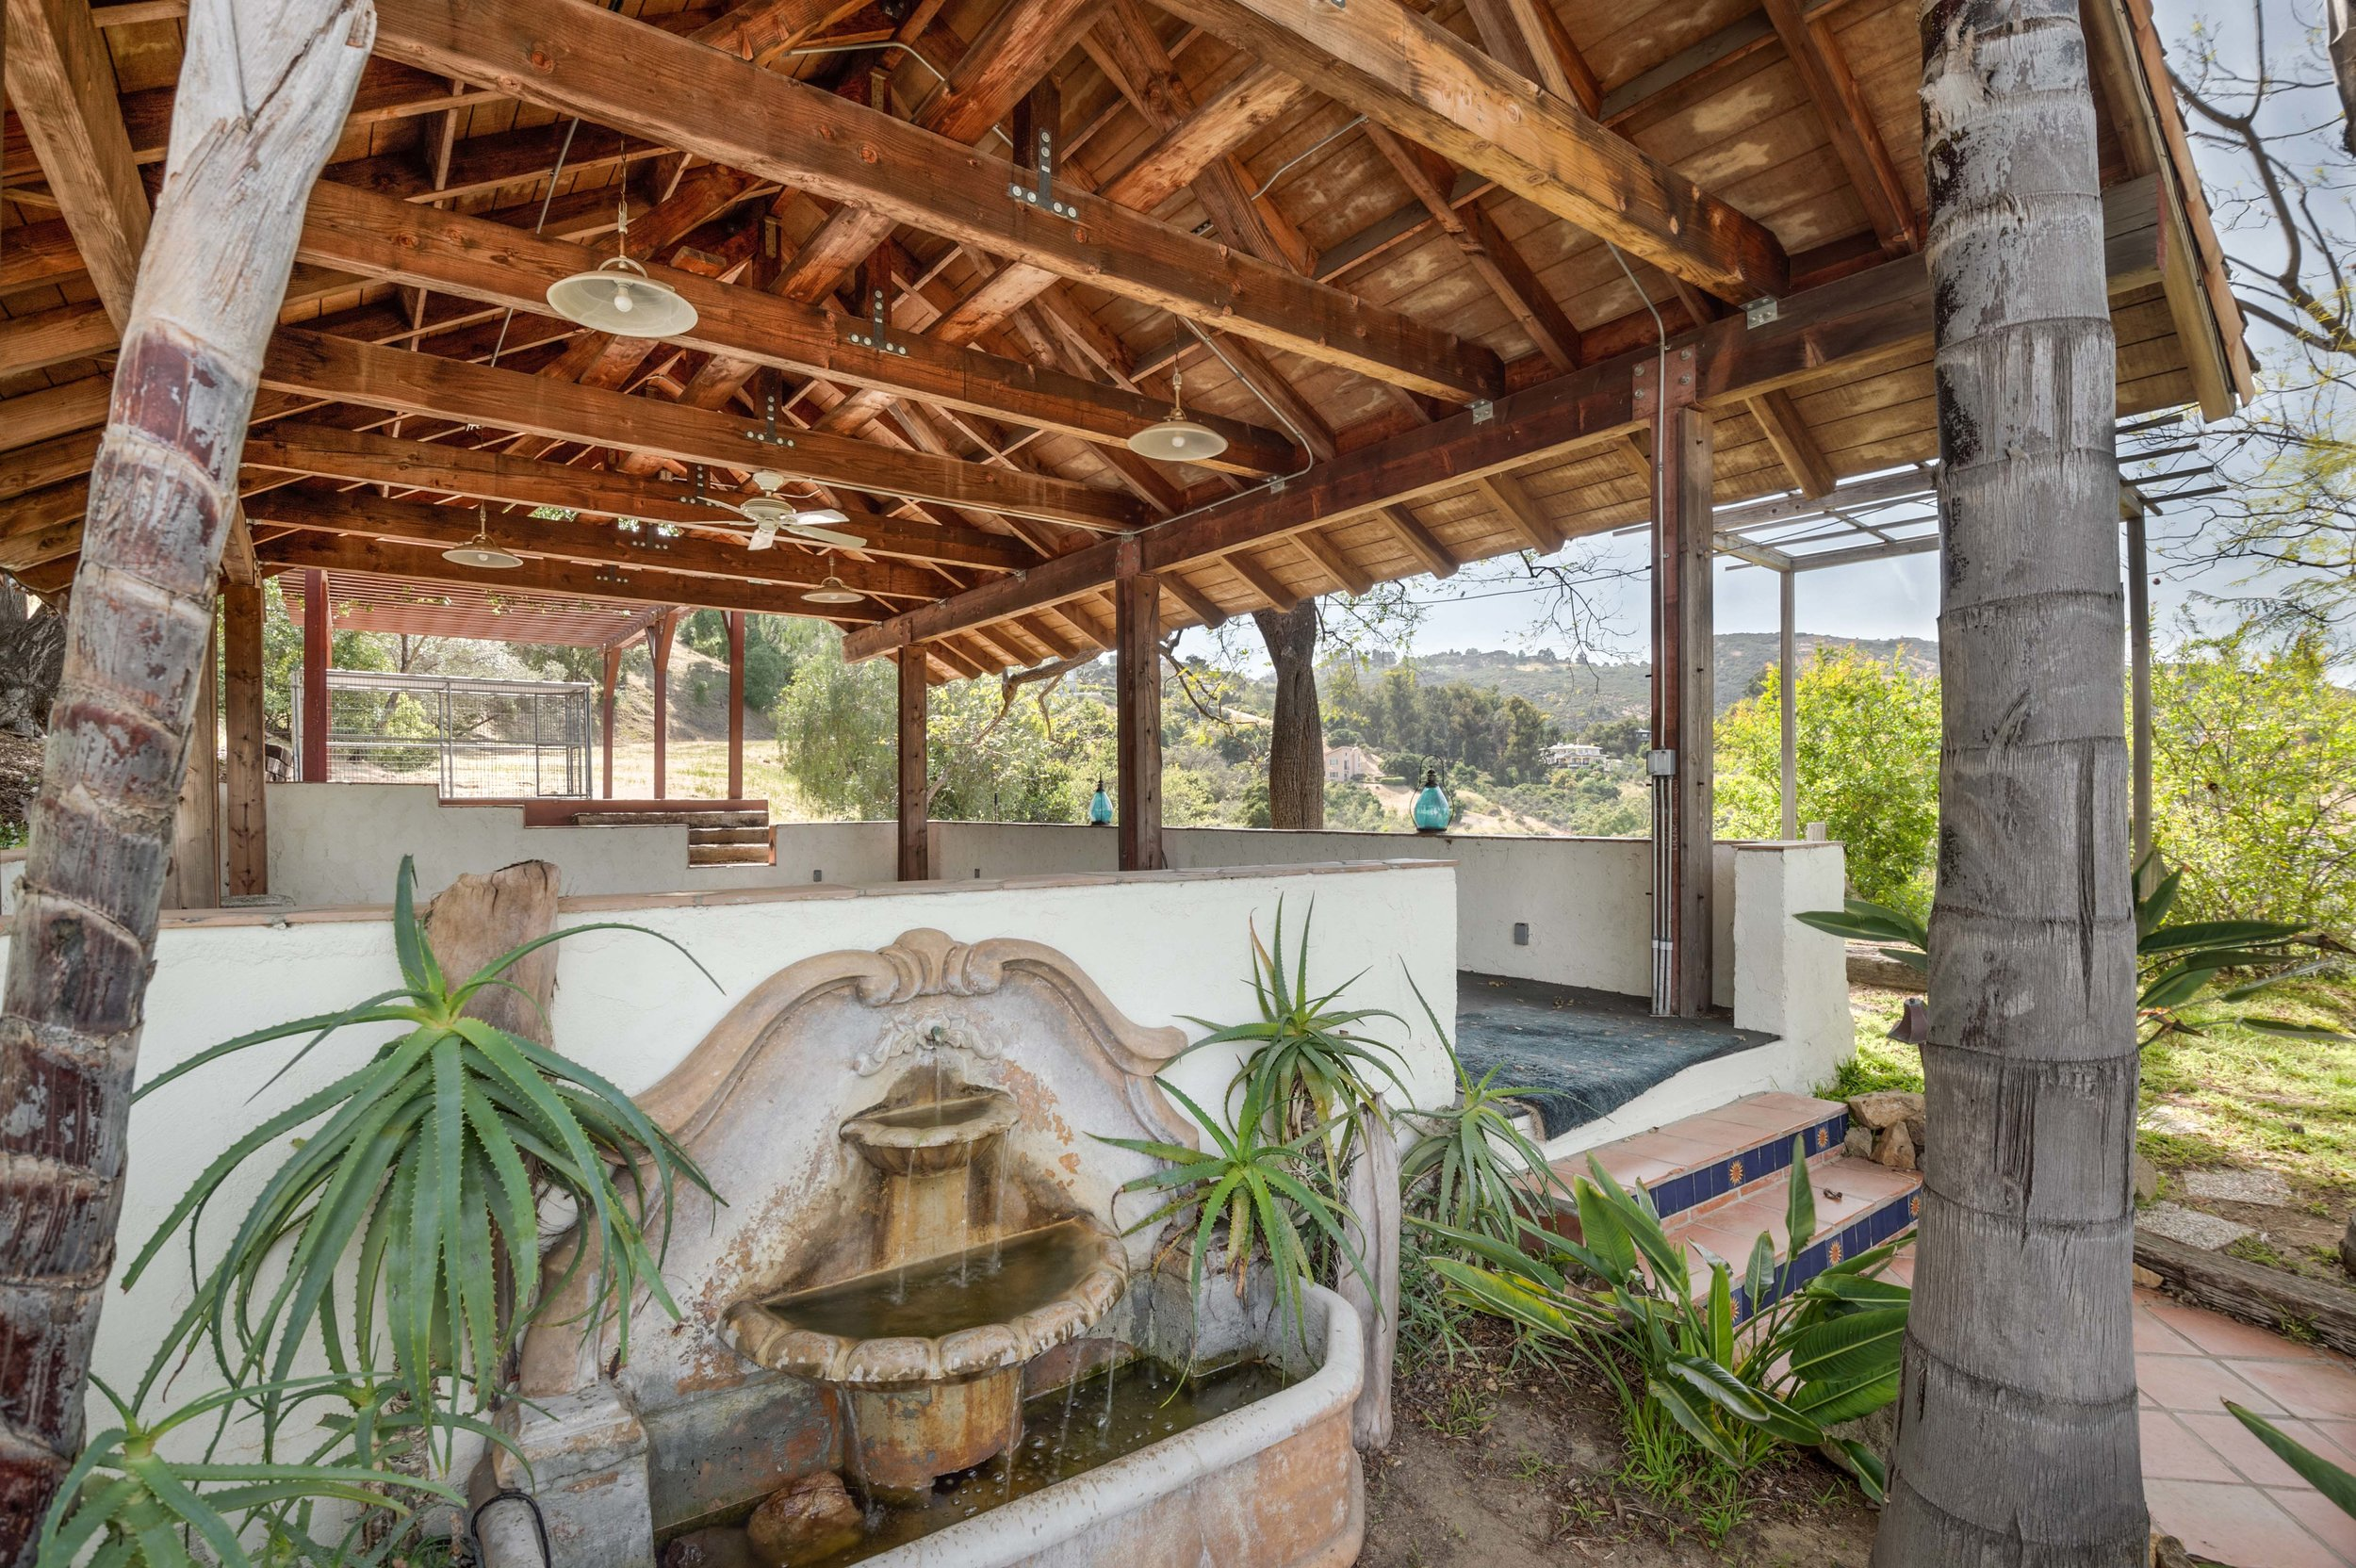 015 20333 Reigate Road Topanga For Sale Lease The Malibu Life Team Luxury Real Estate.jpg